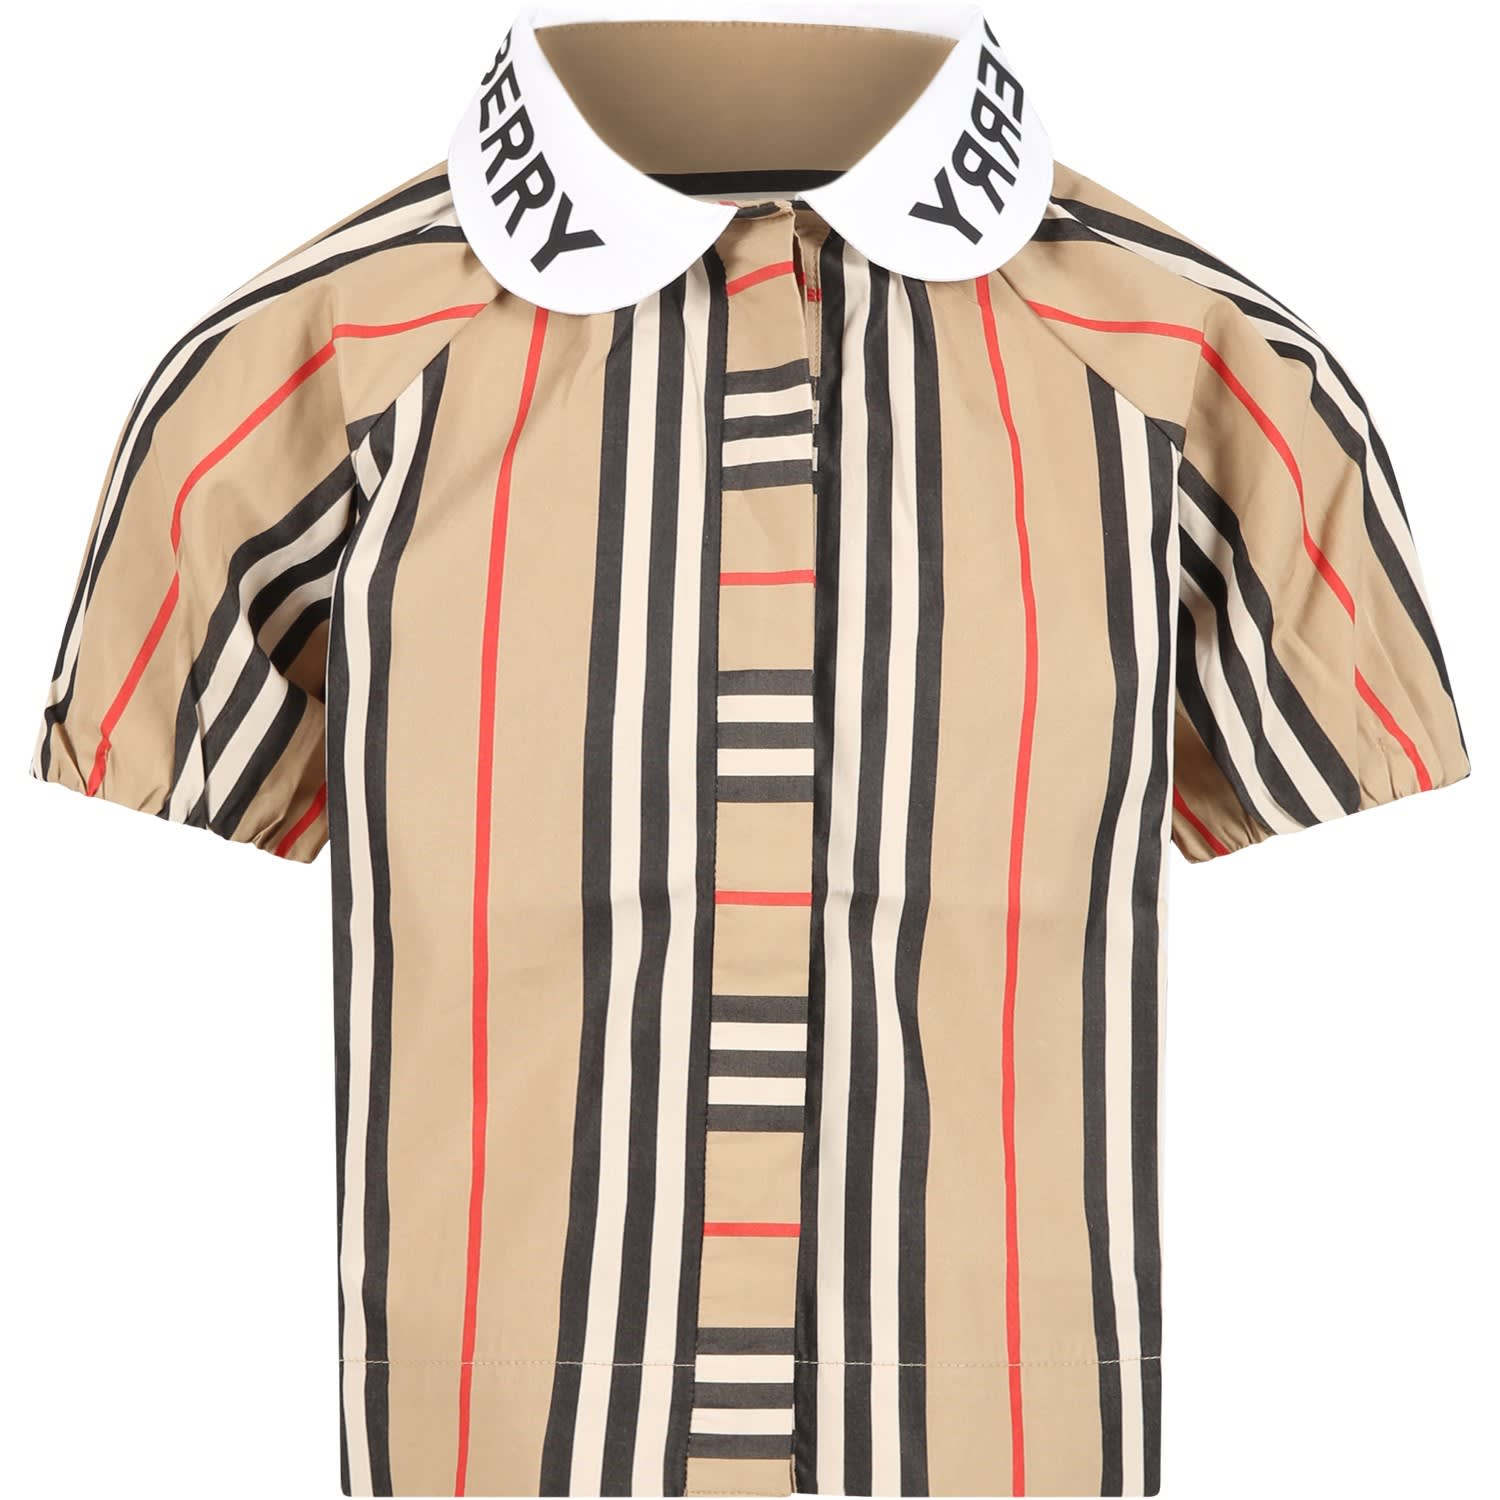 Burberry Kids' Beige Shirt For Girl With Logos